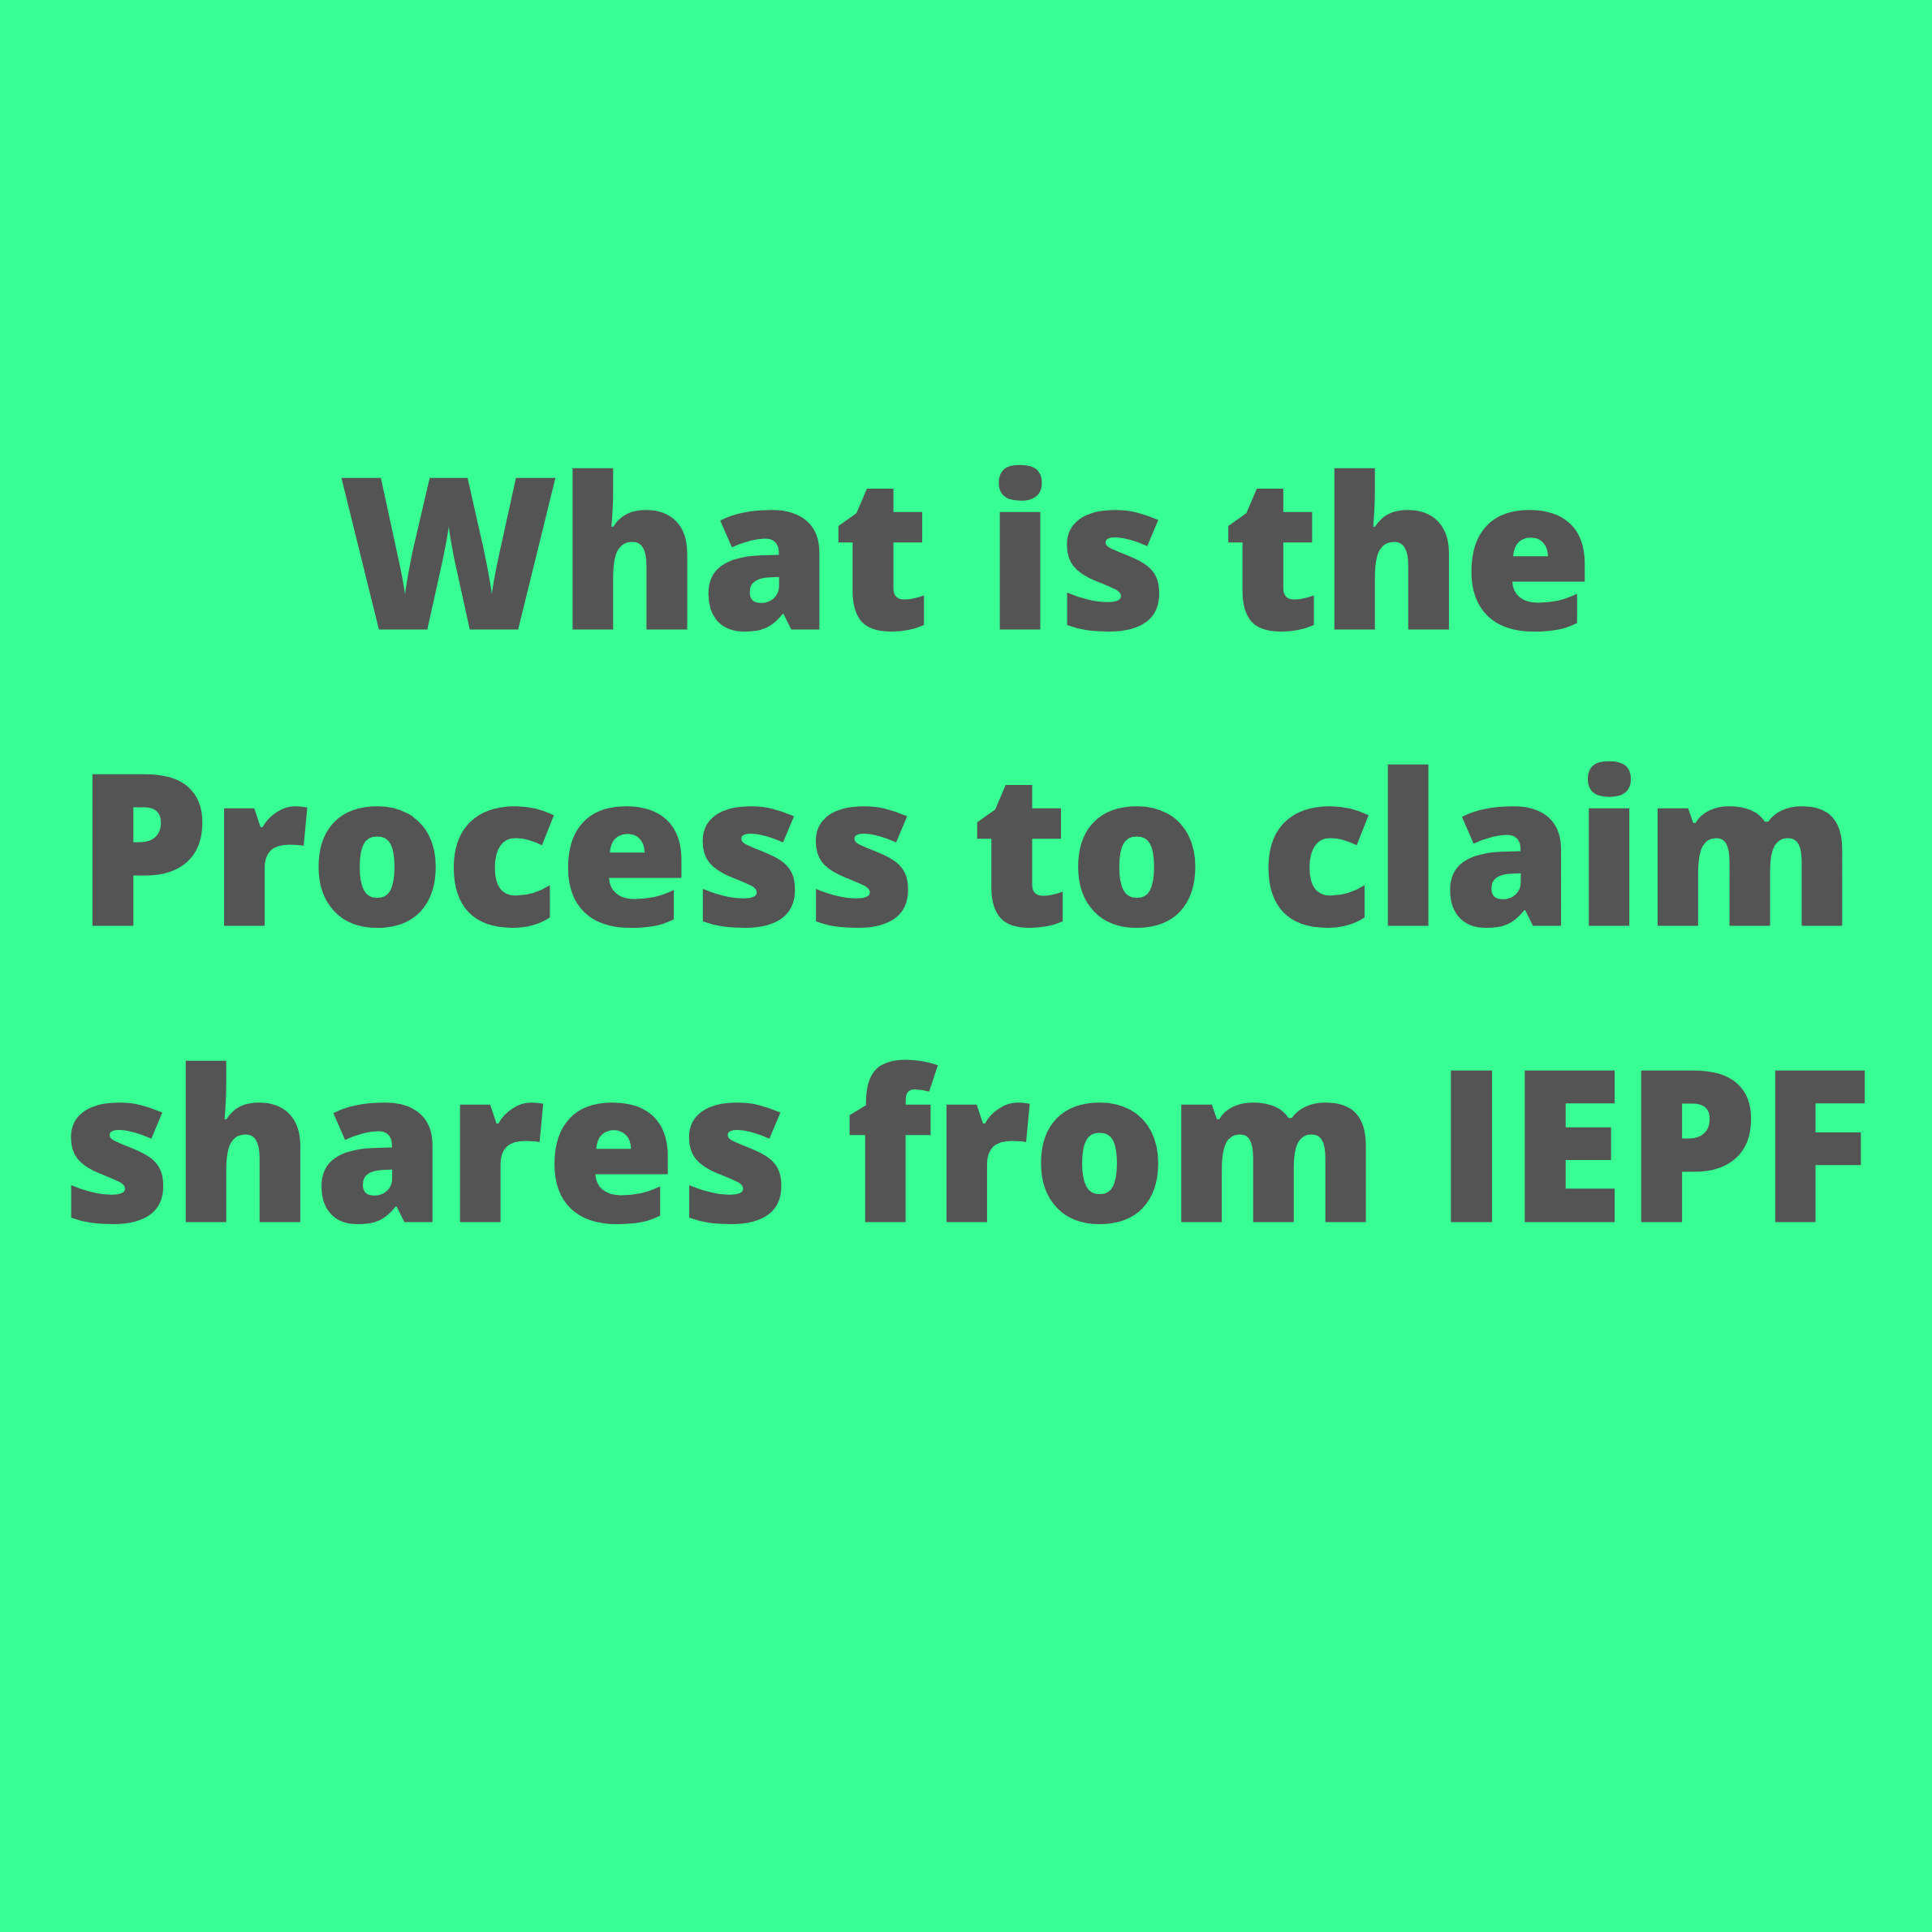 PROCESS TO CLAIM SHARES FROM IEPF